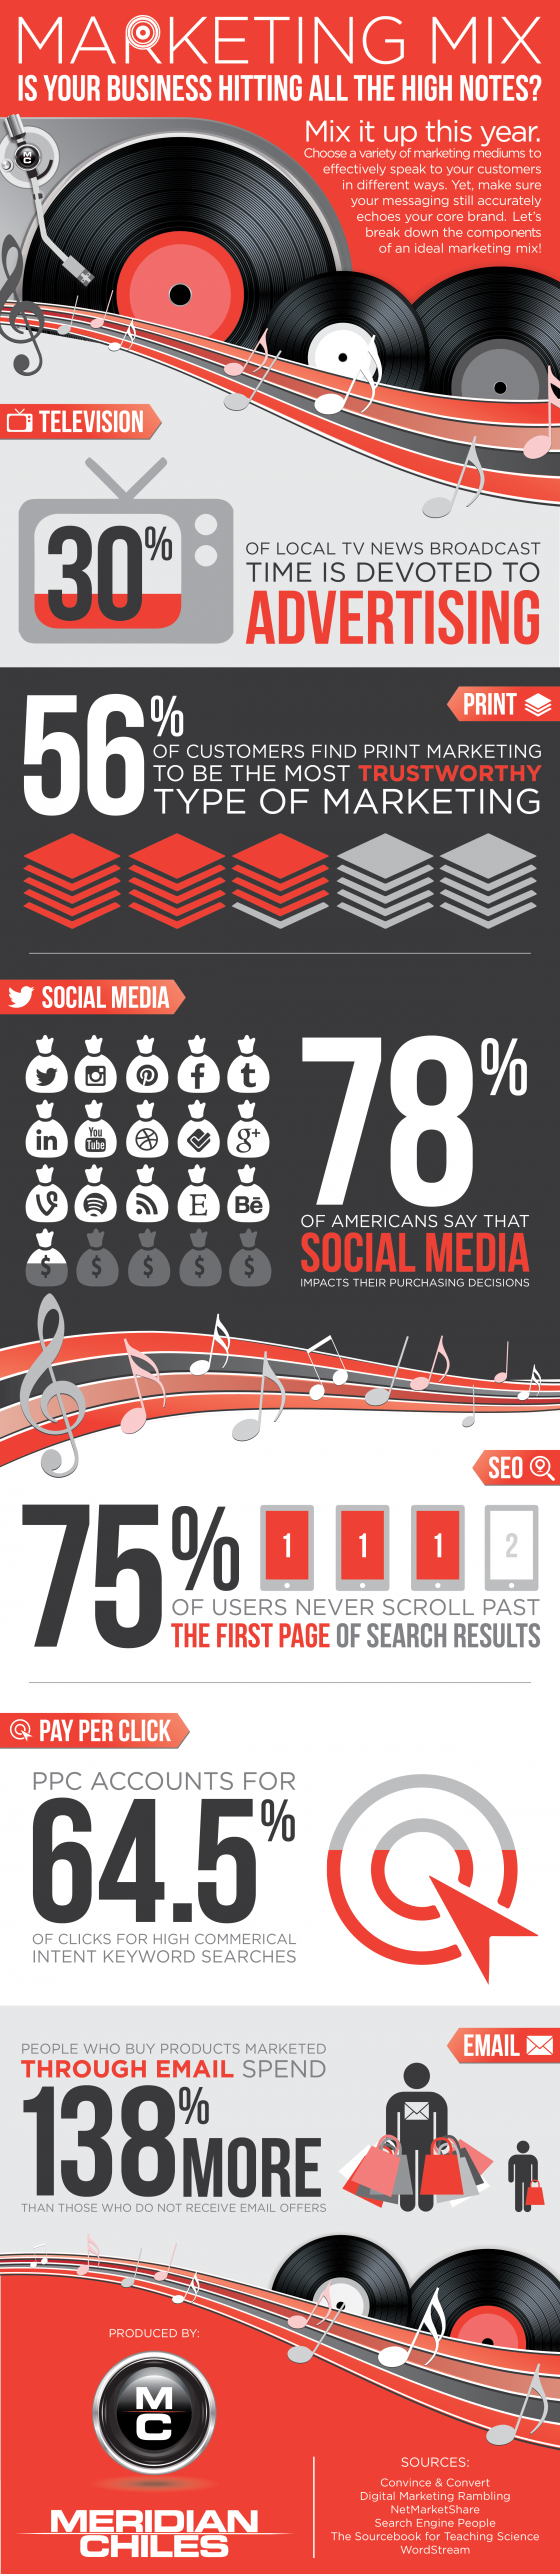 Marketing Mix: Is Your Business Hitting All The High Notes?